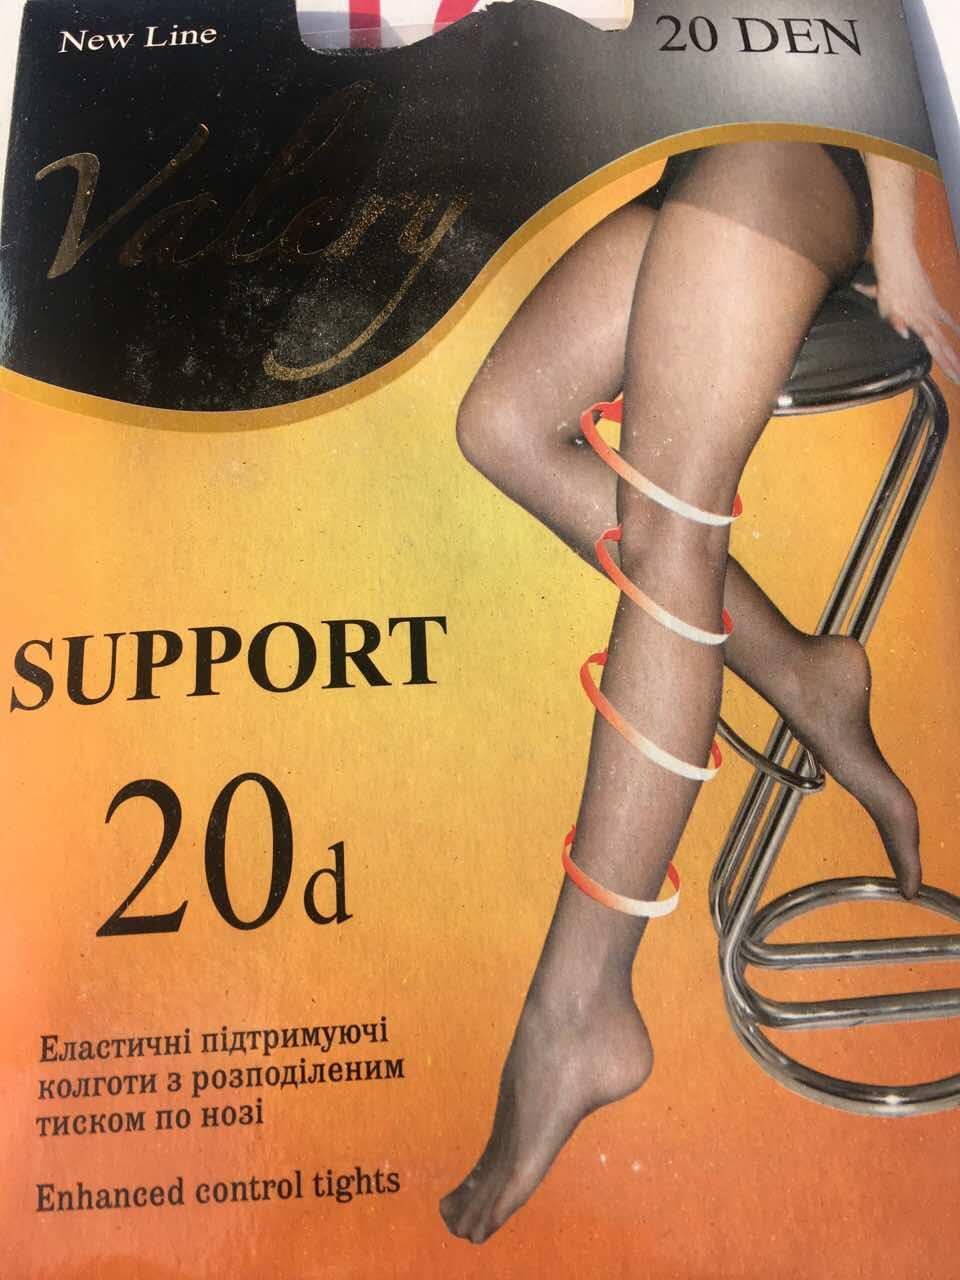 Support 20